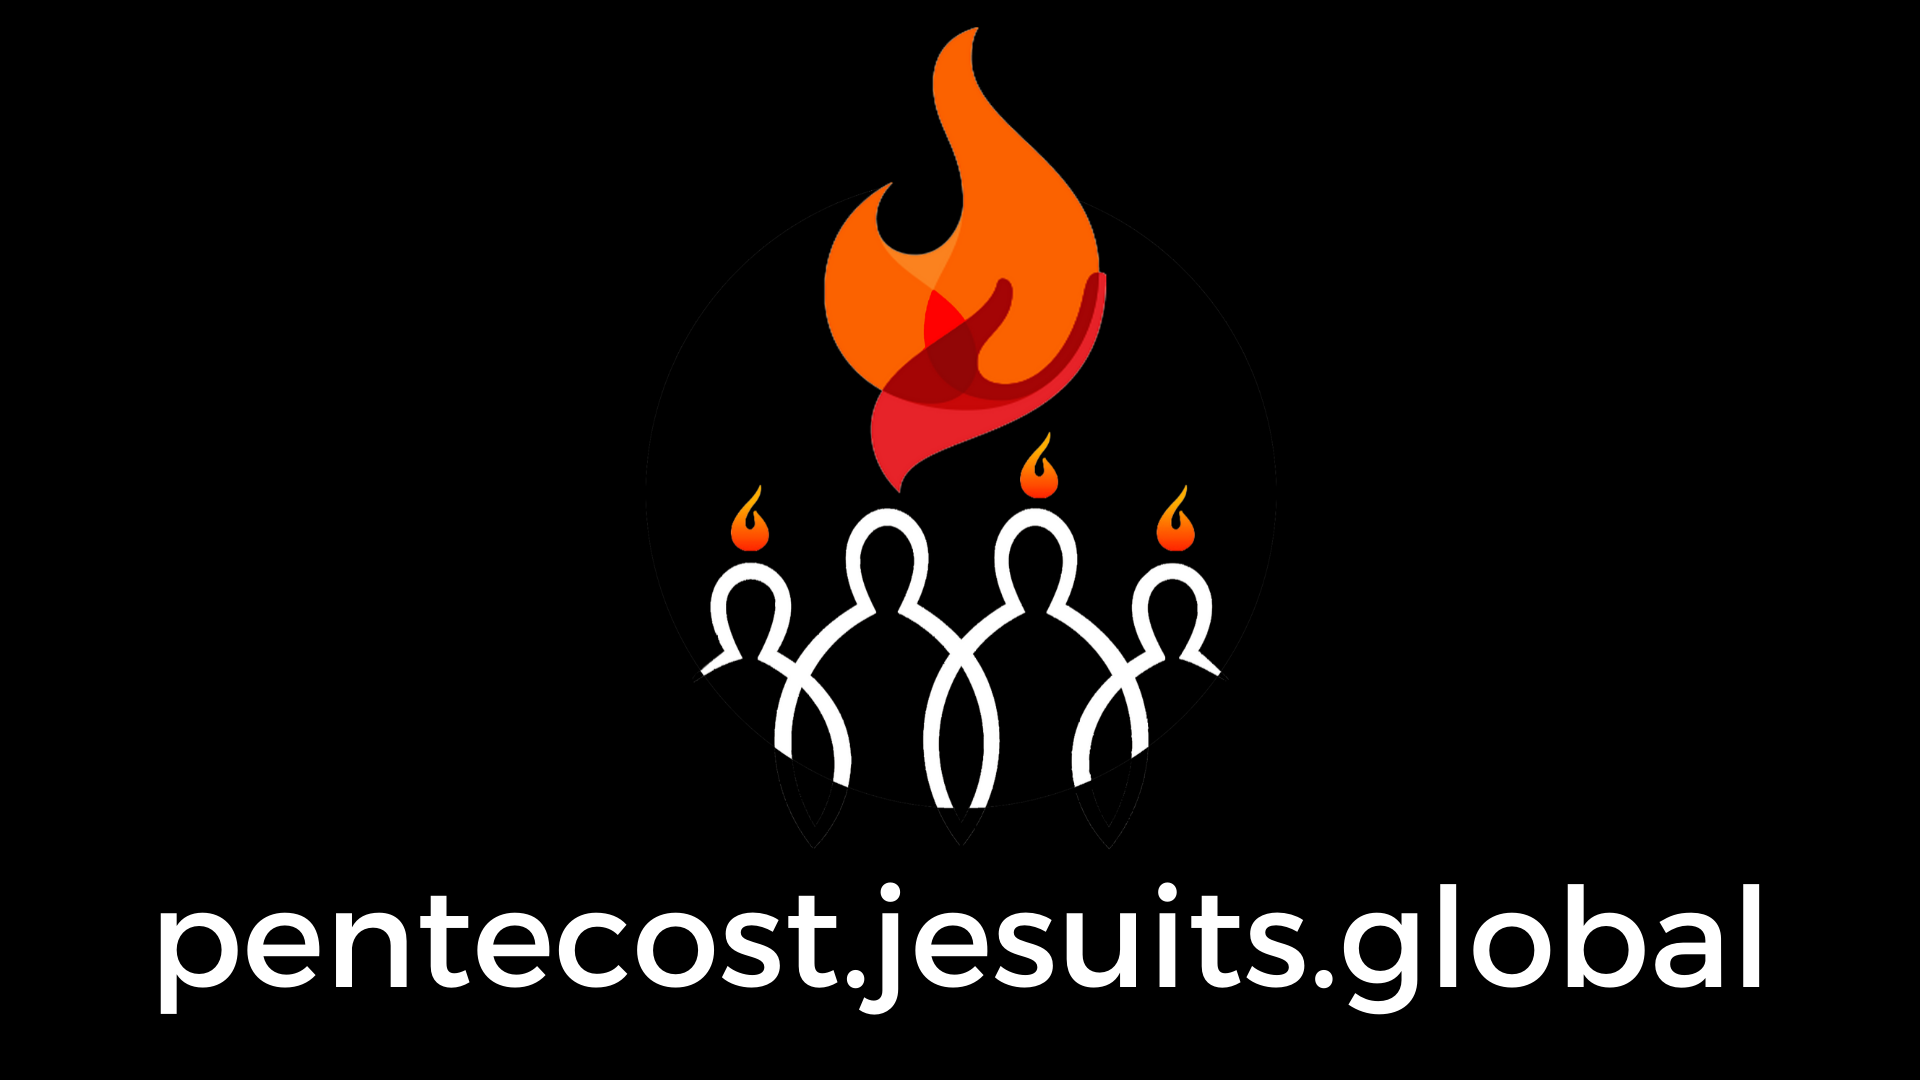 pentecost.jesuits.global.png